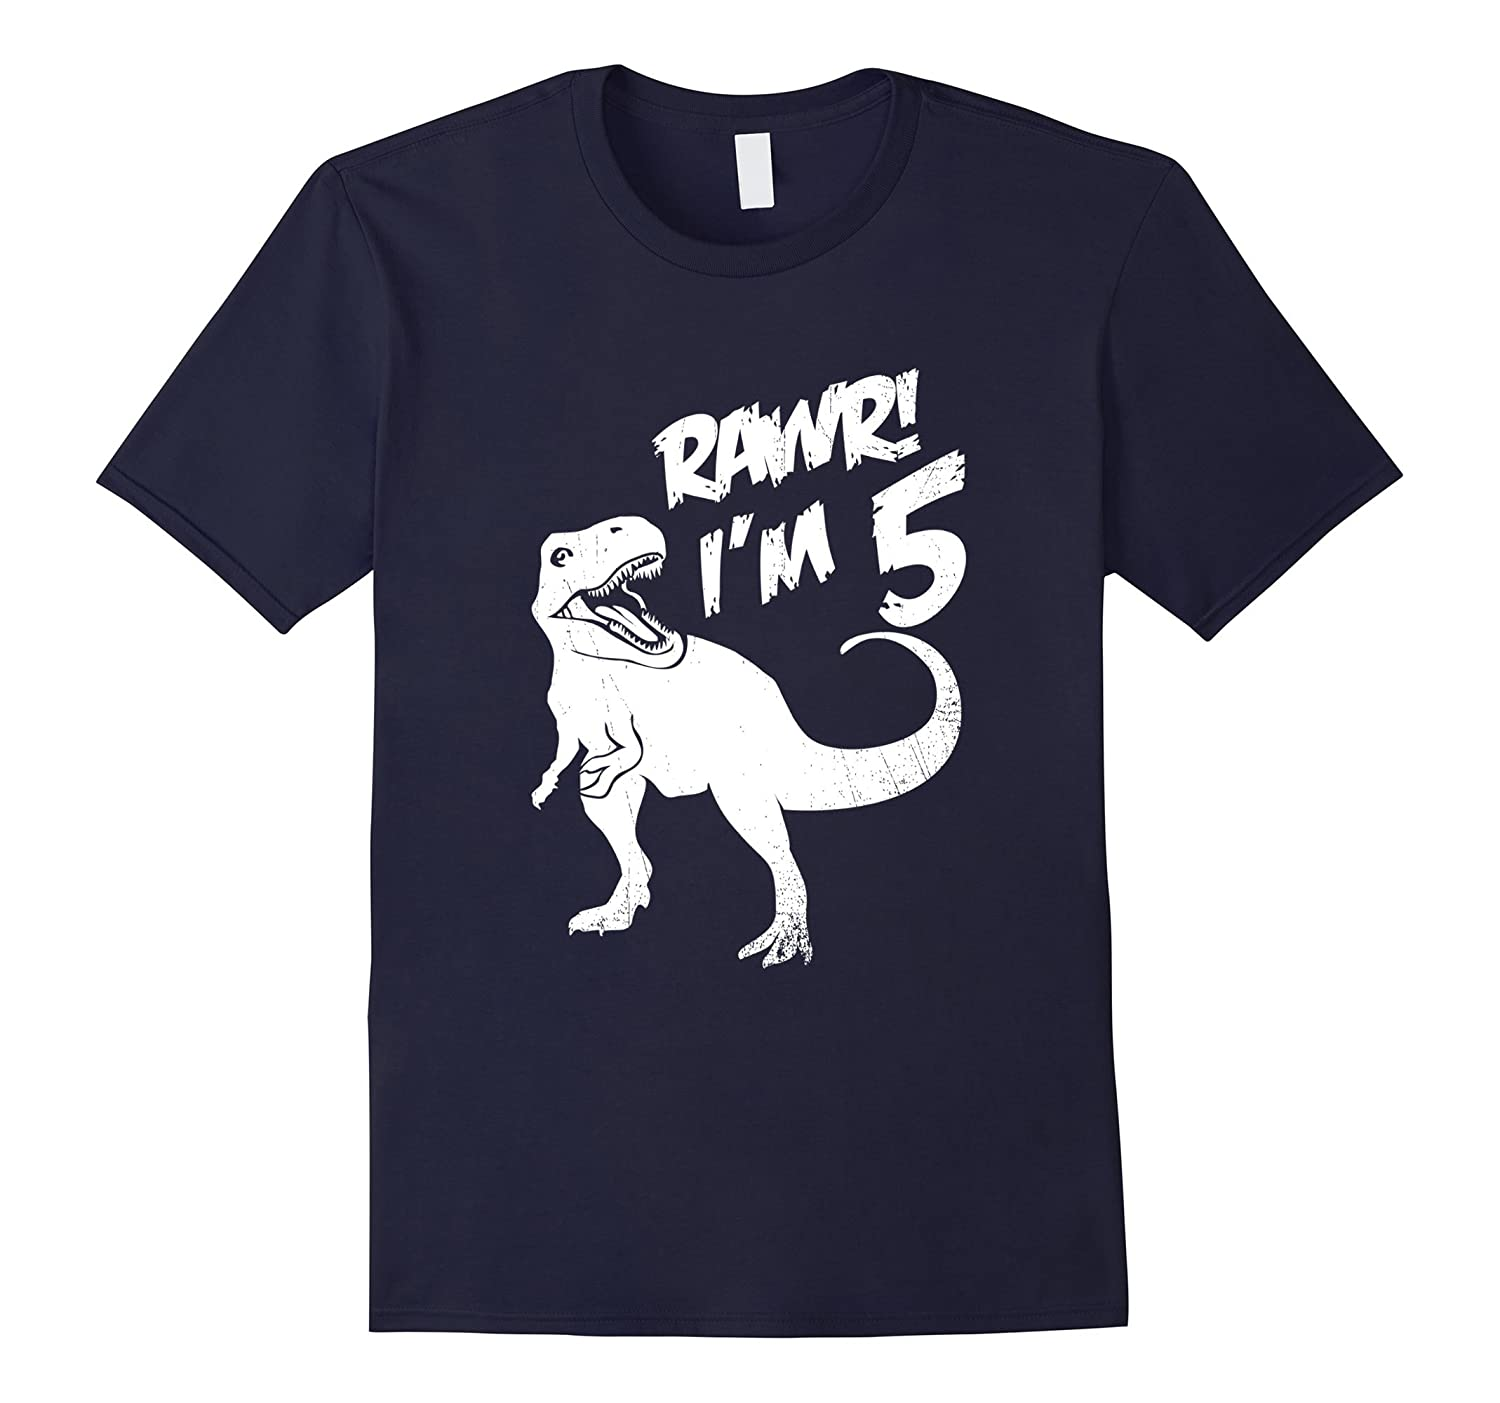 Kids 5Th Birthday Dinosaur Gift T Shirt For 5 Year Old